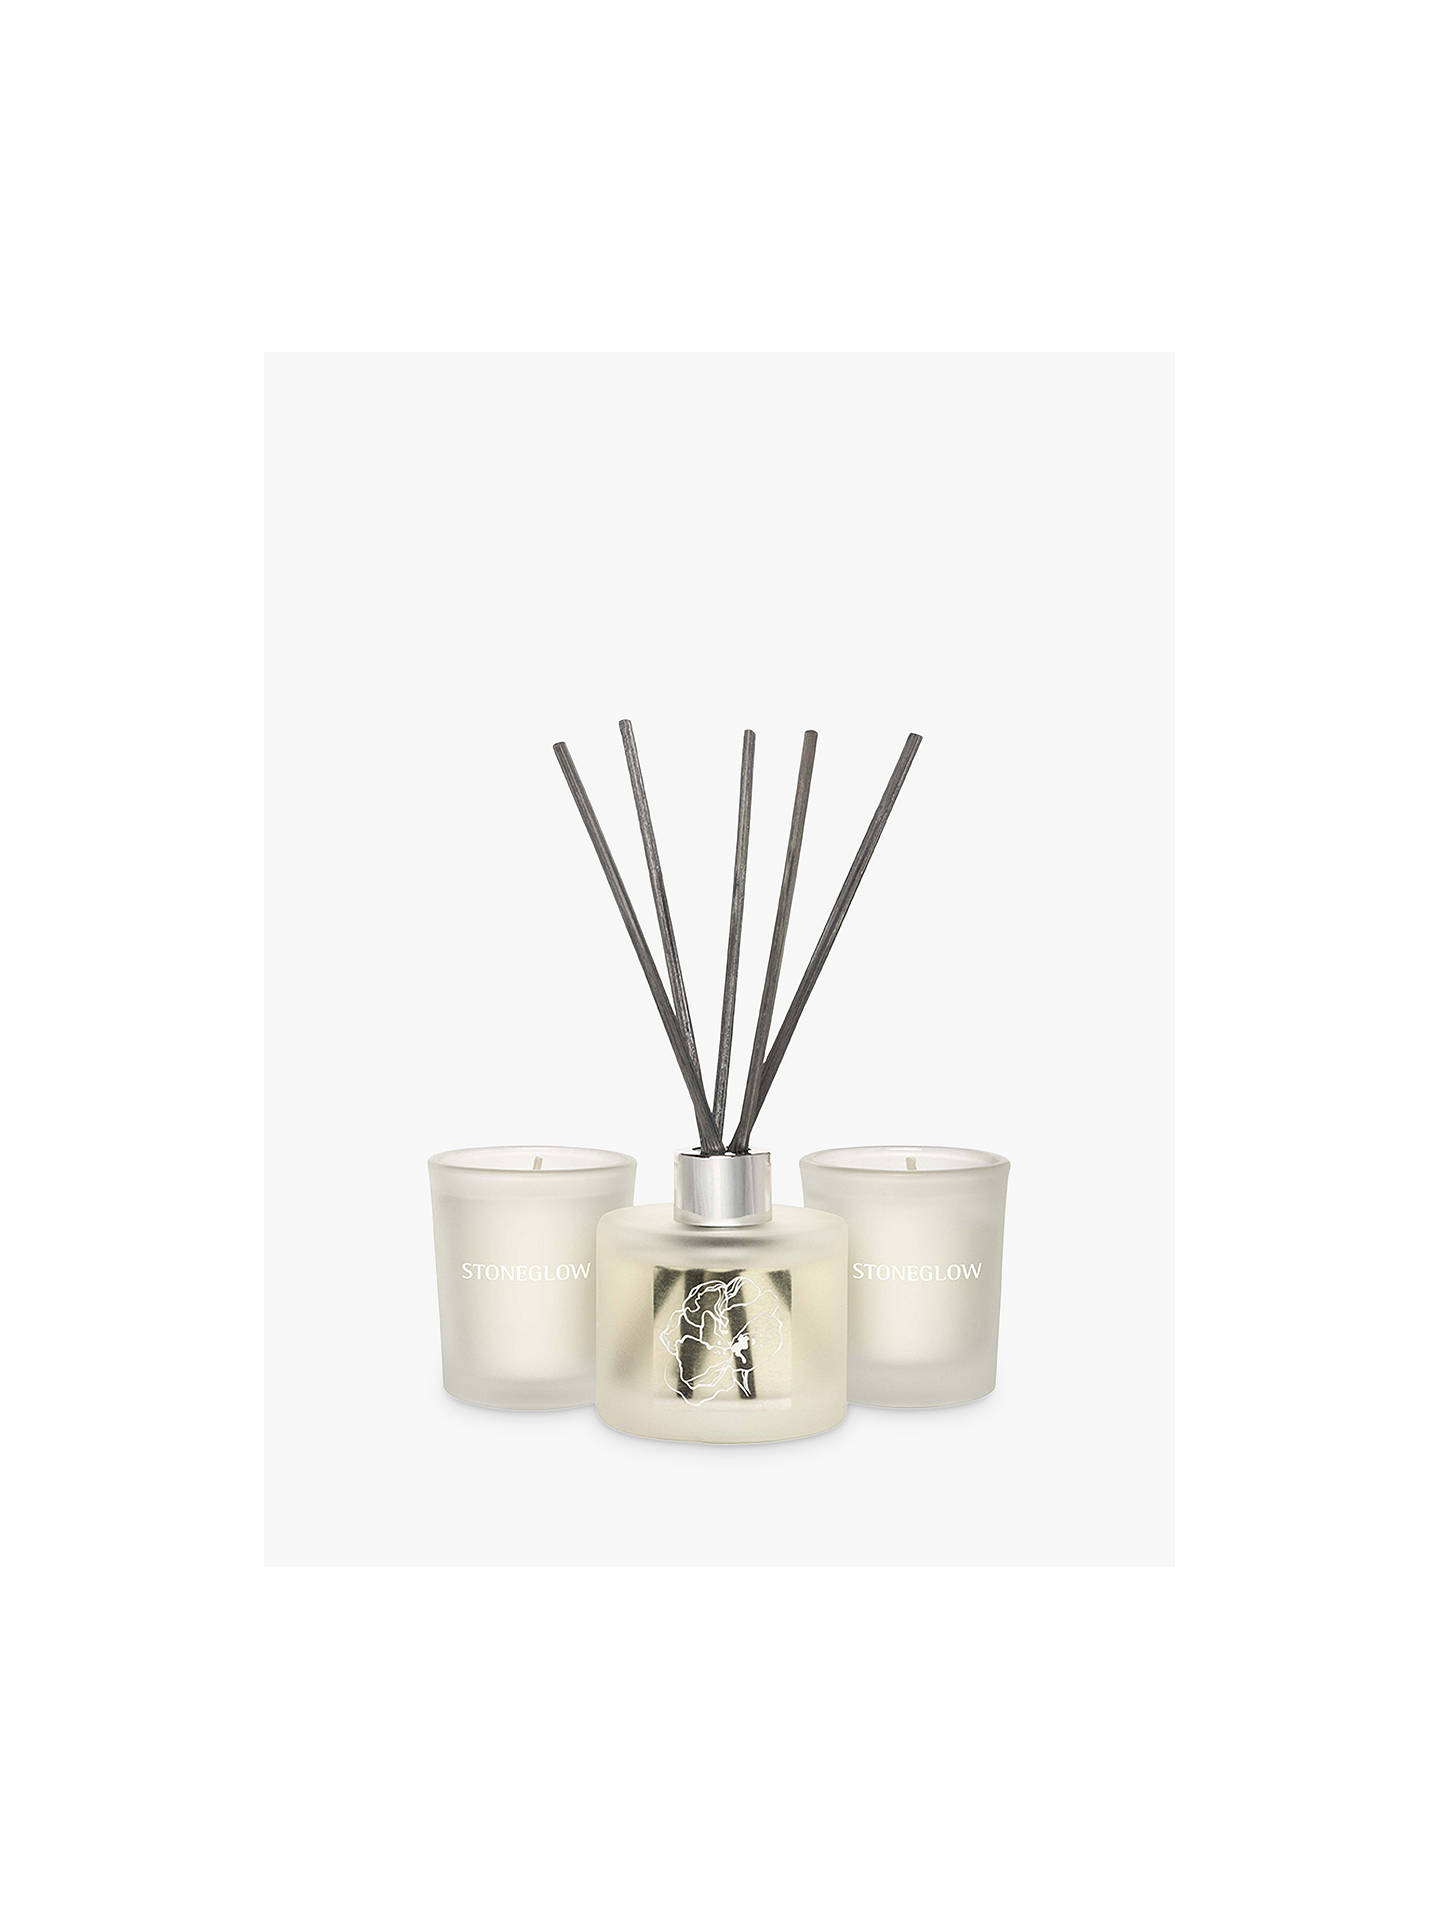 BuyStoneglow Day Flower White Linen & Cotton Gift Set Online at johnlewis.com